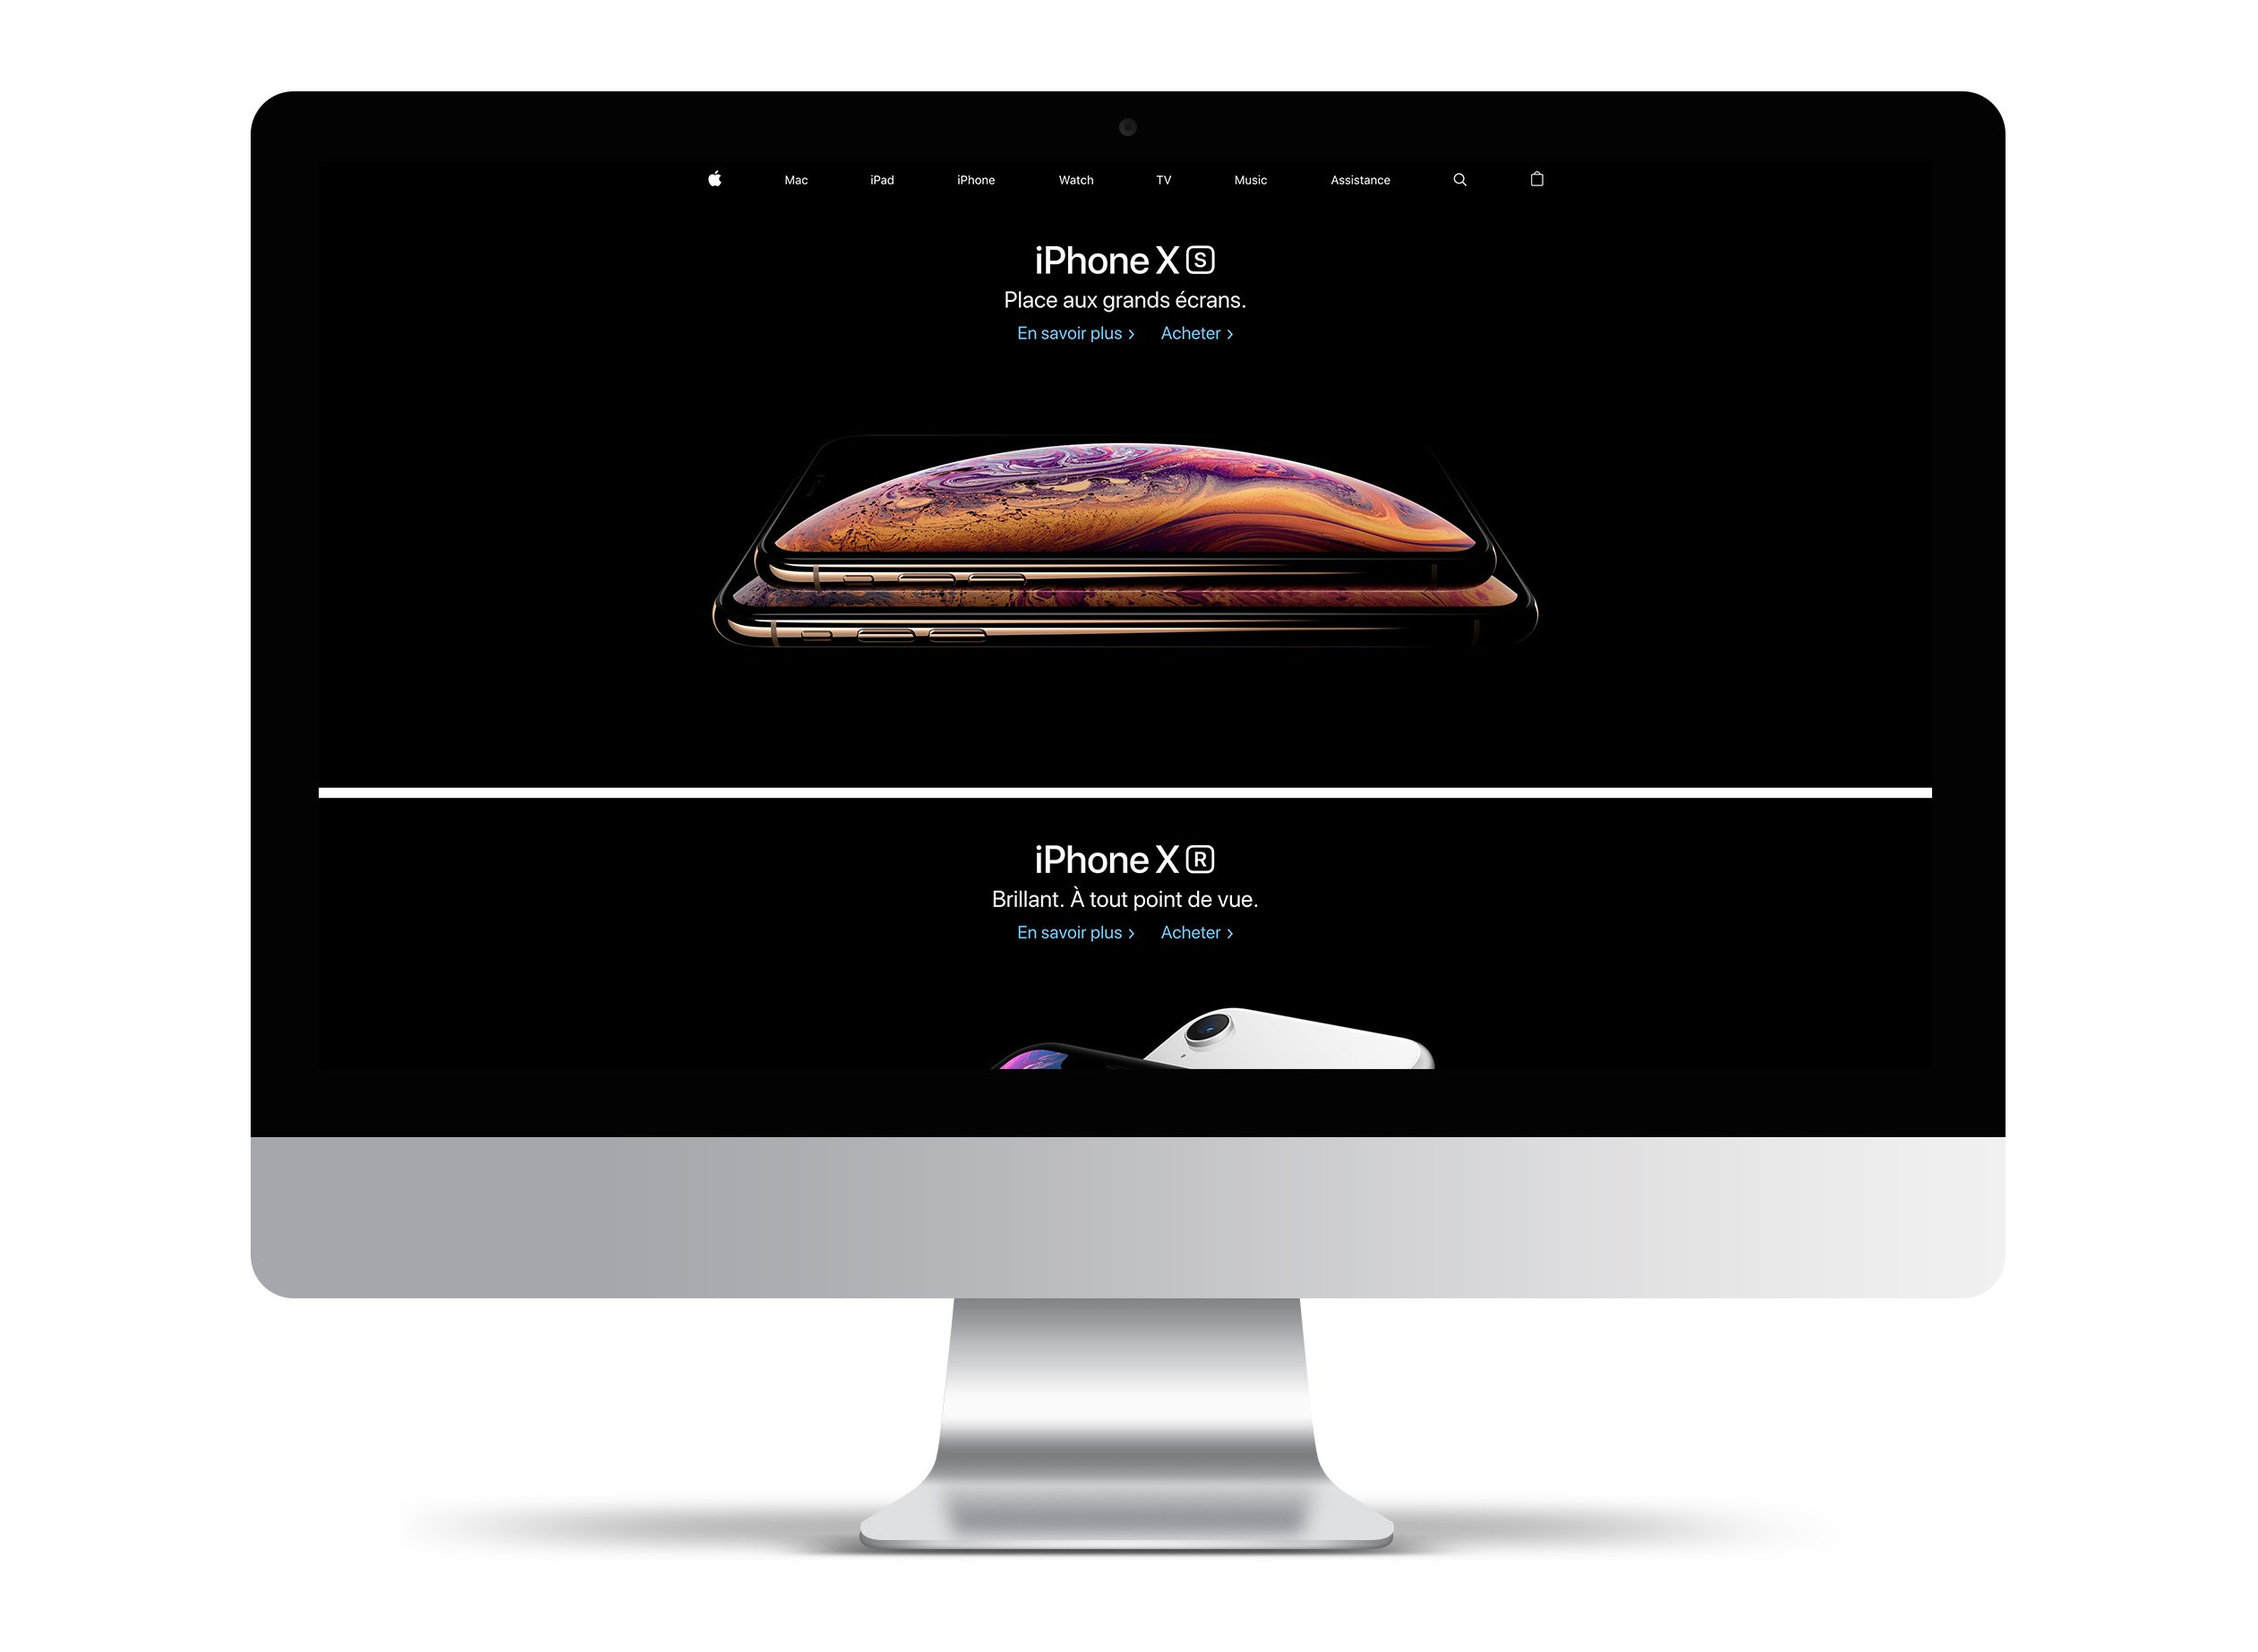 webdesign user experience apple